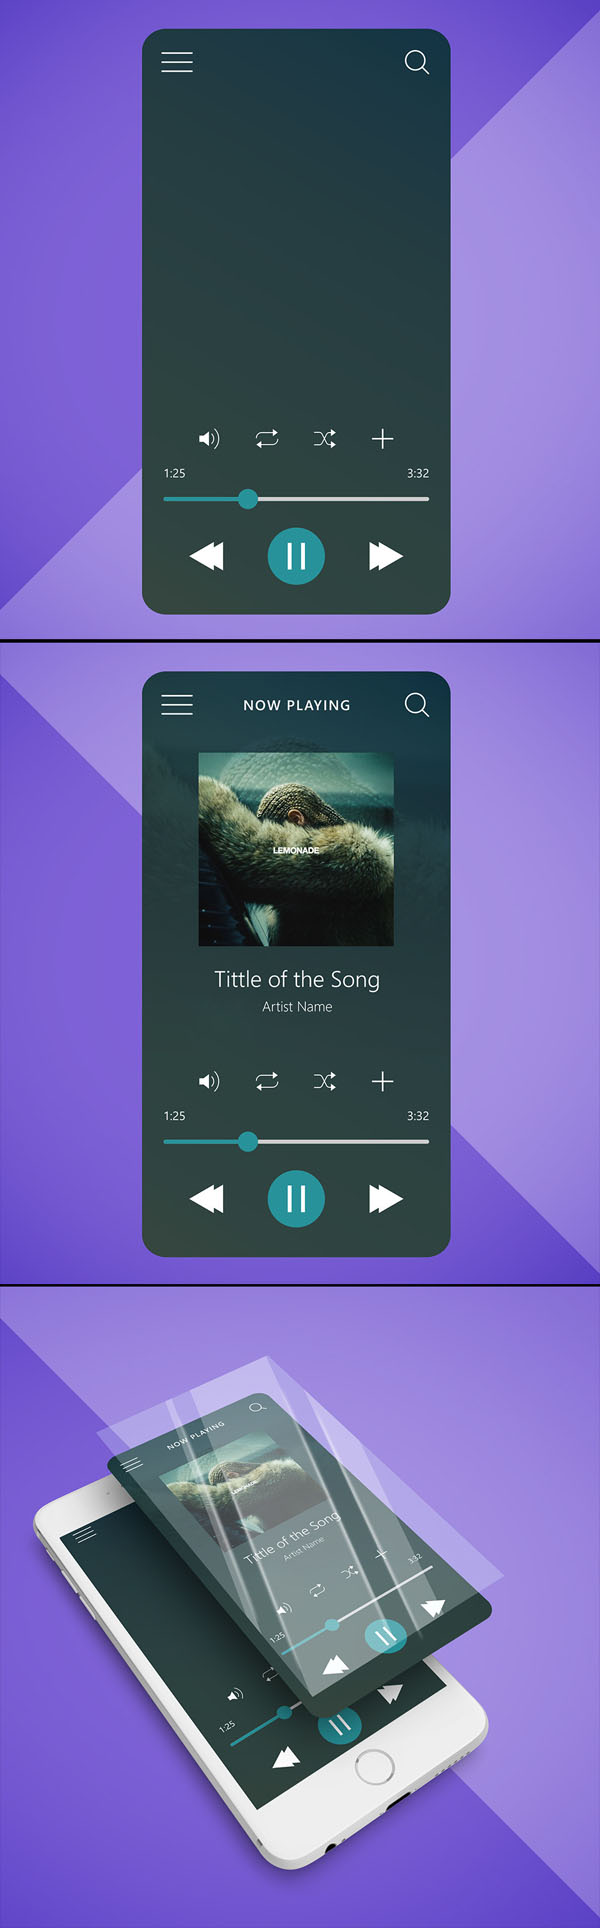 Music Player Interface - Free UI Mockup + Illustration